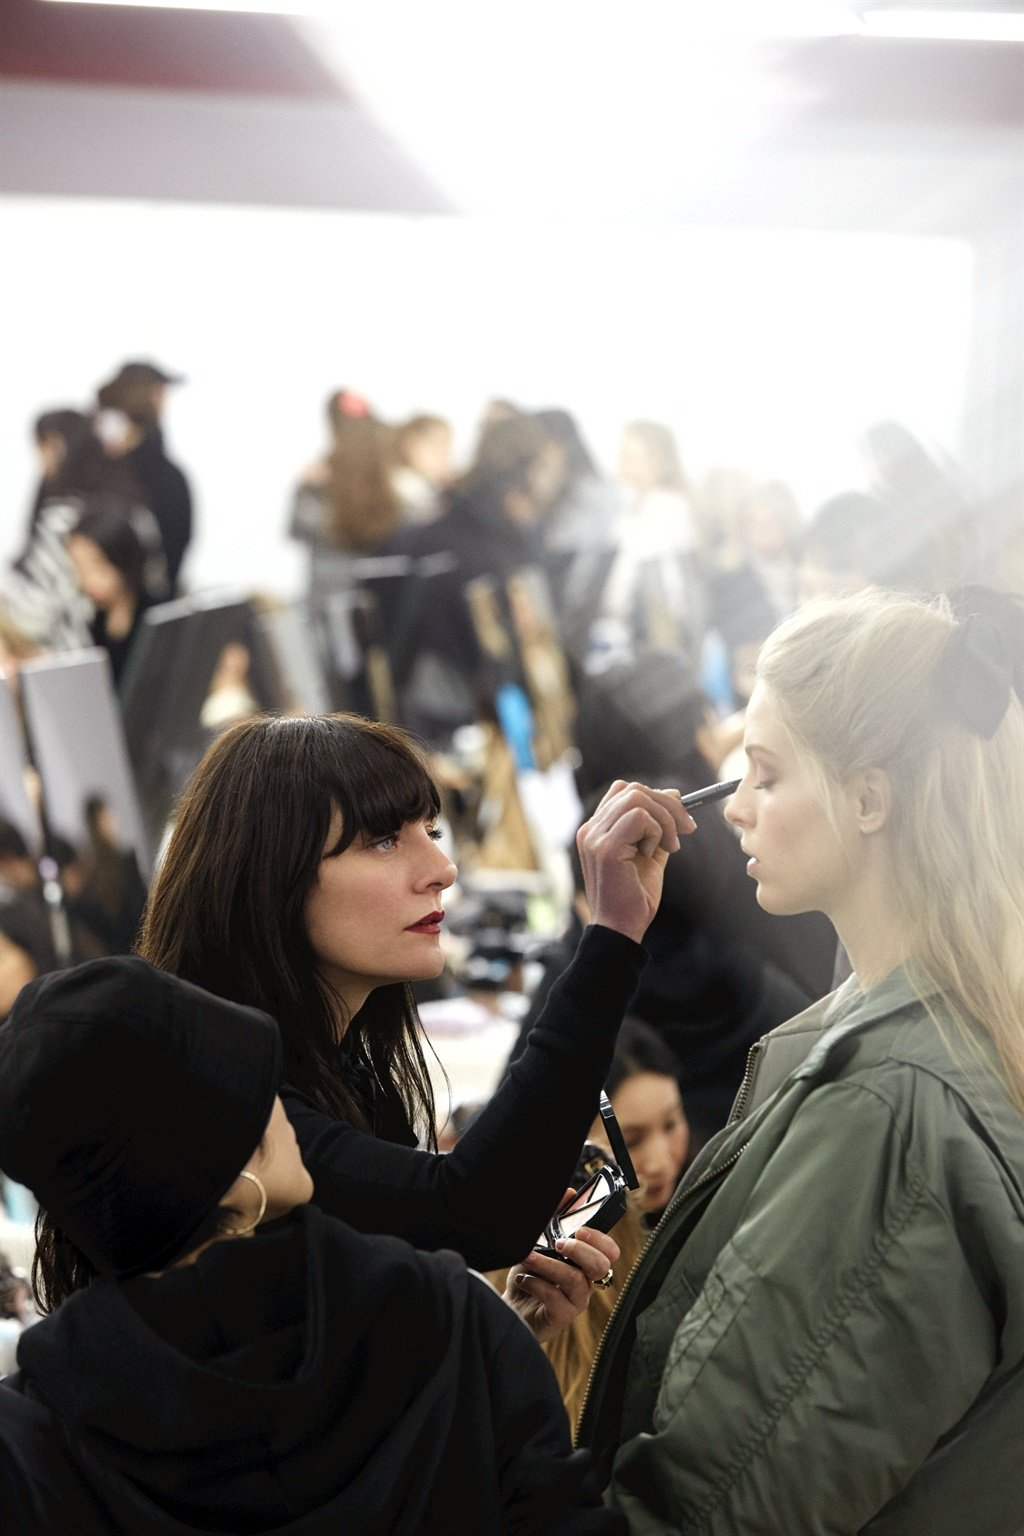 chanel makeup artist Lucia Pica